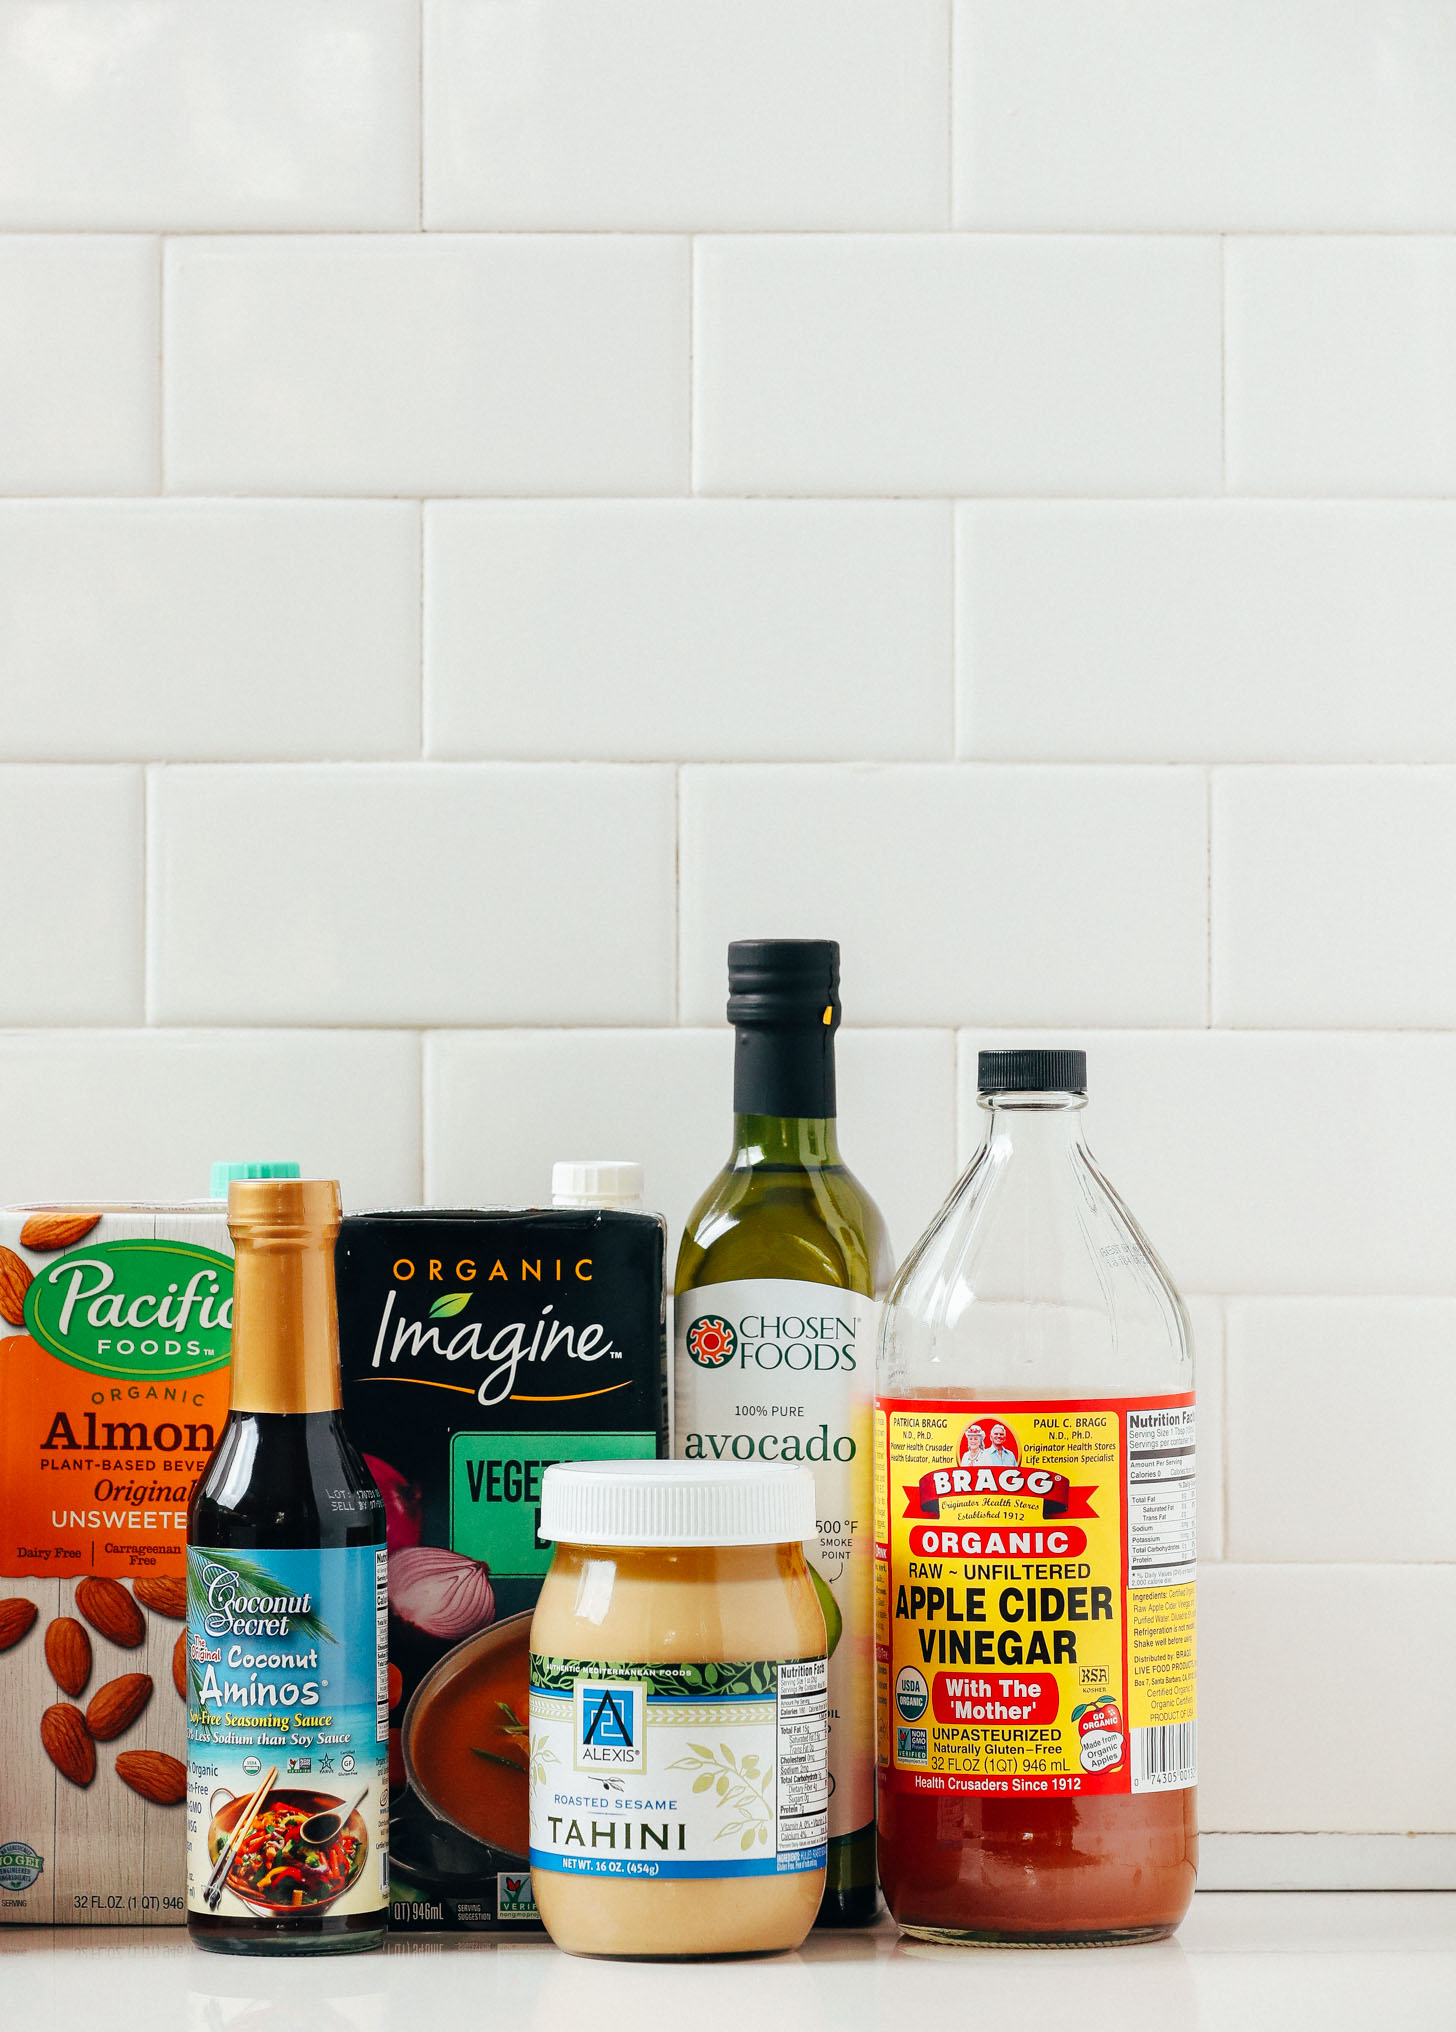 Tahini, coconut aminos, and other condiments included in our guide on How to Stock Your Pantry